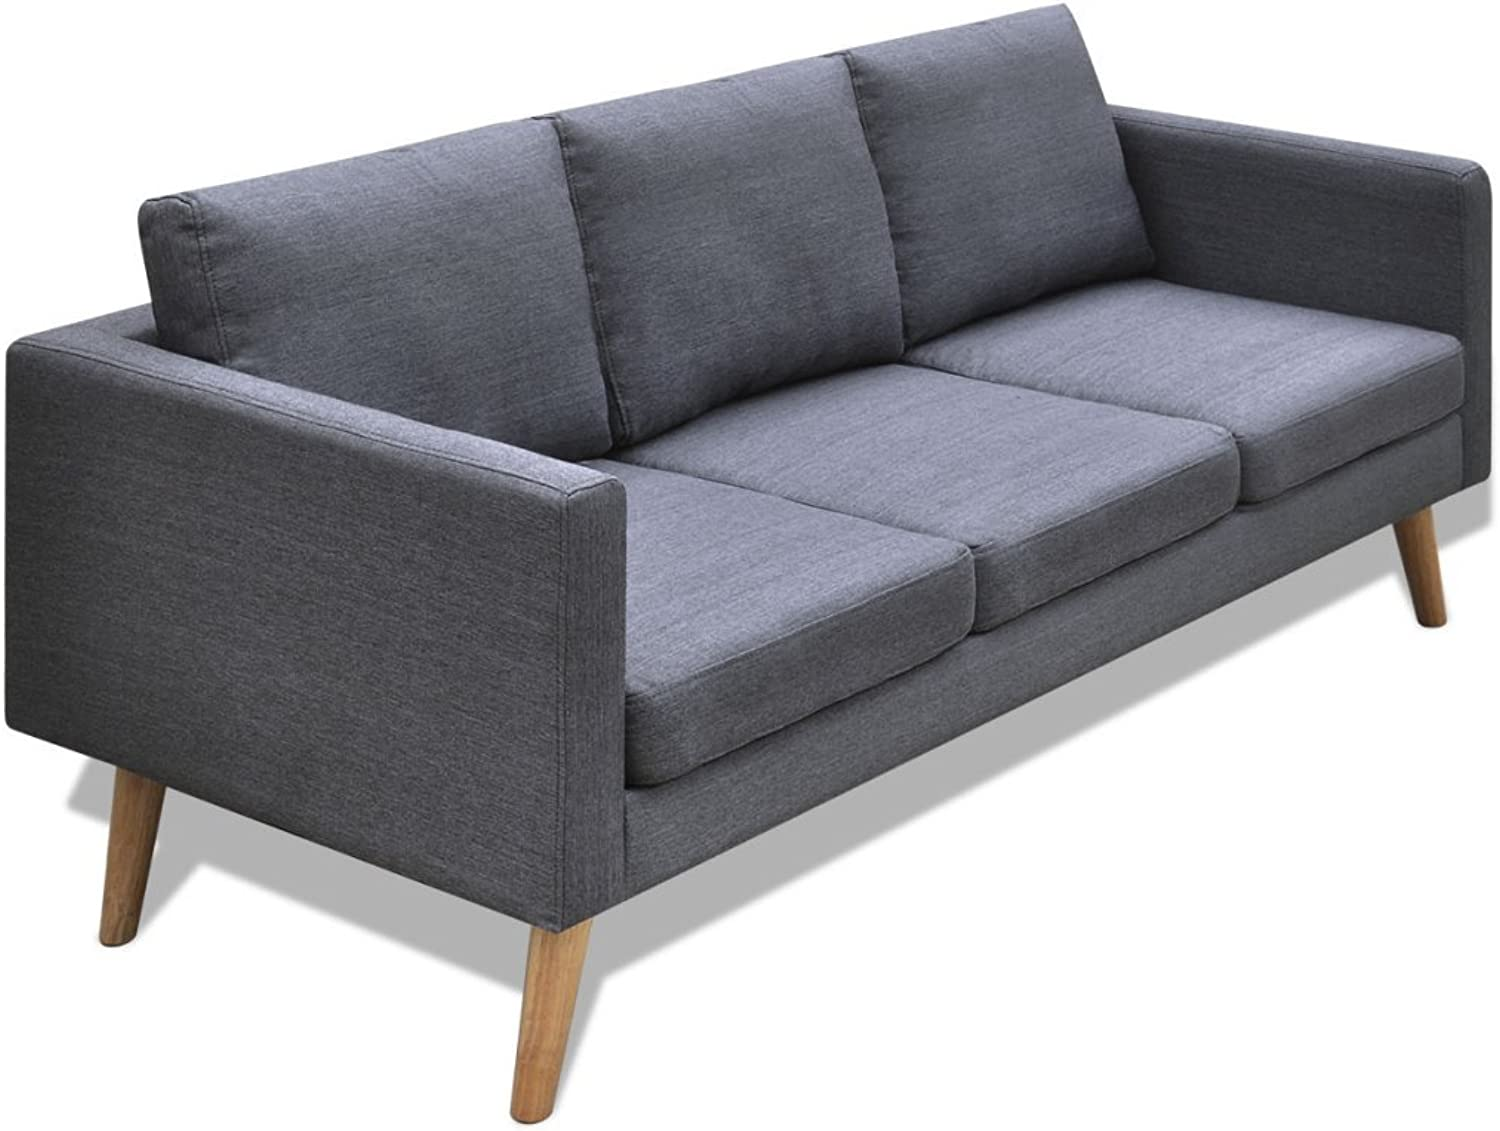 VidaXL Sofa 3-Sitzer Polstersofa Stoffsofa Lounge Couch Holz Design Sitzmbel